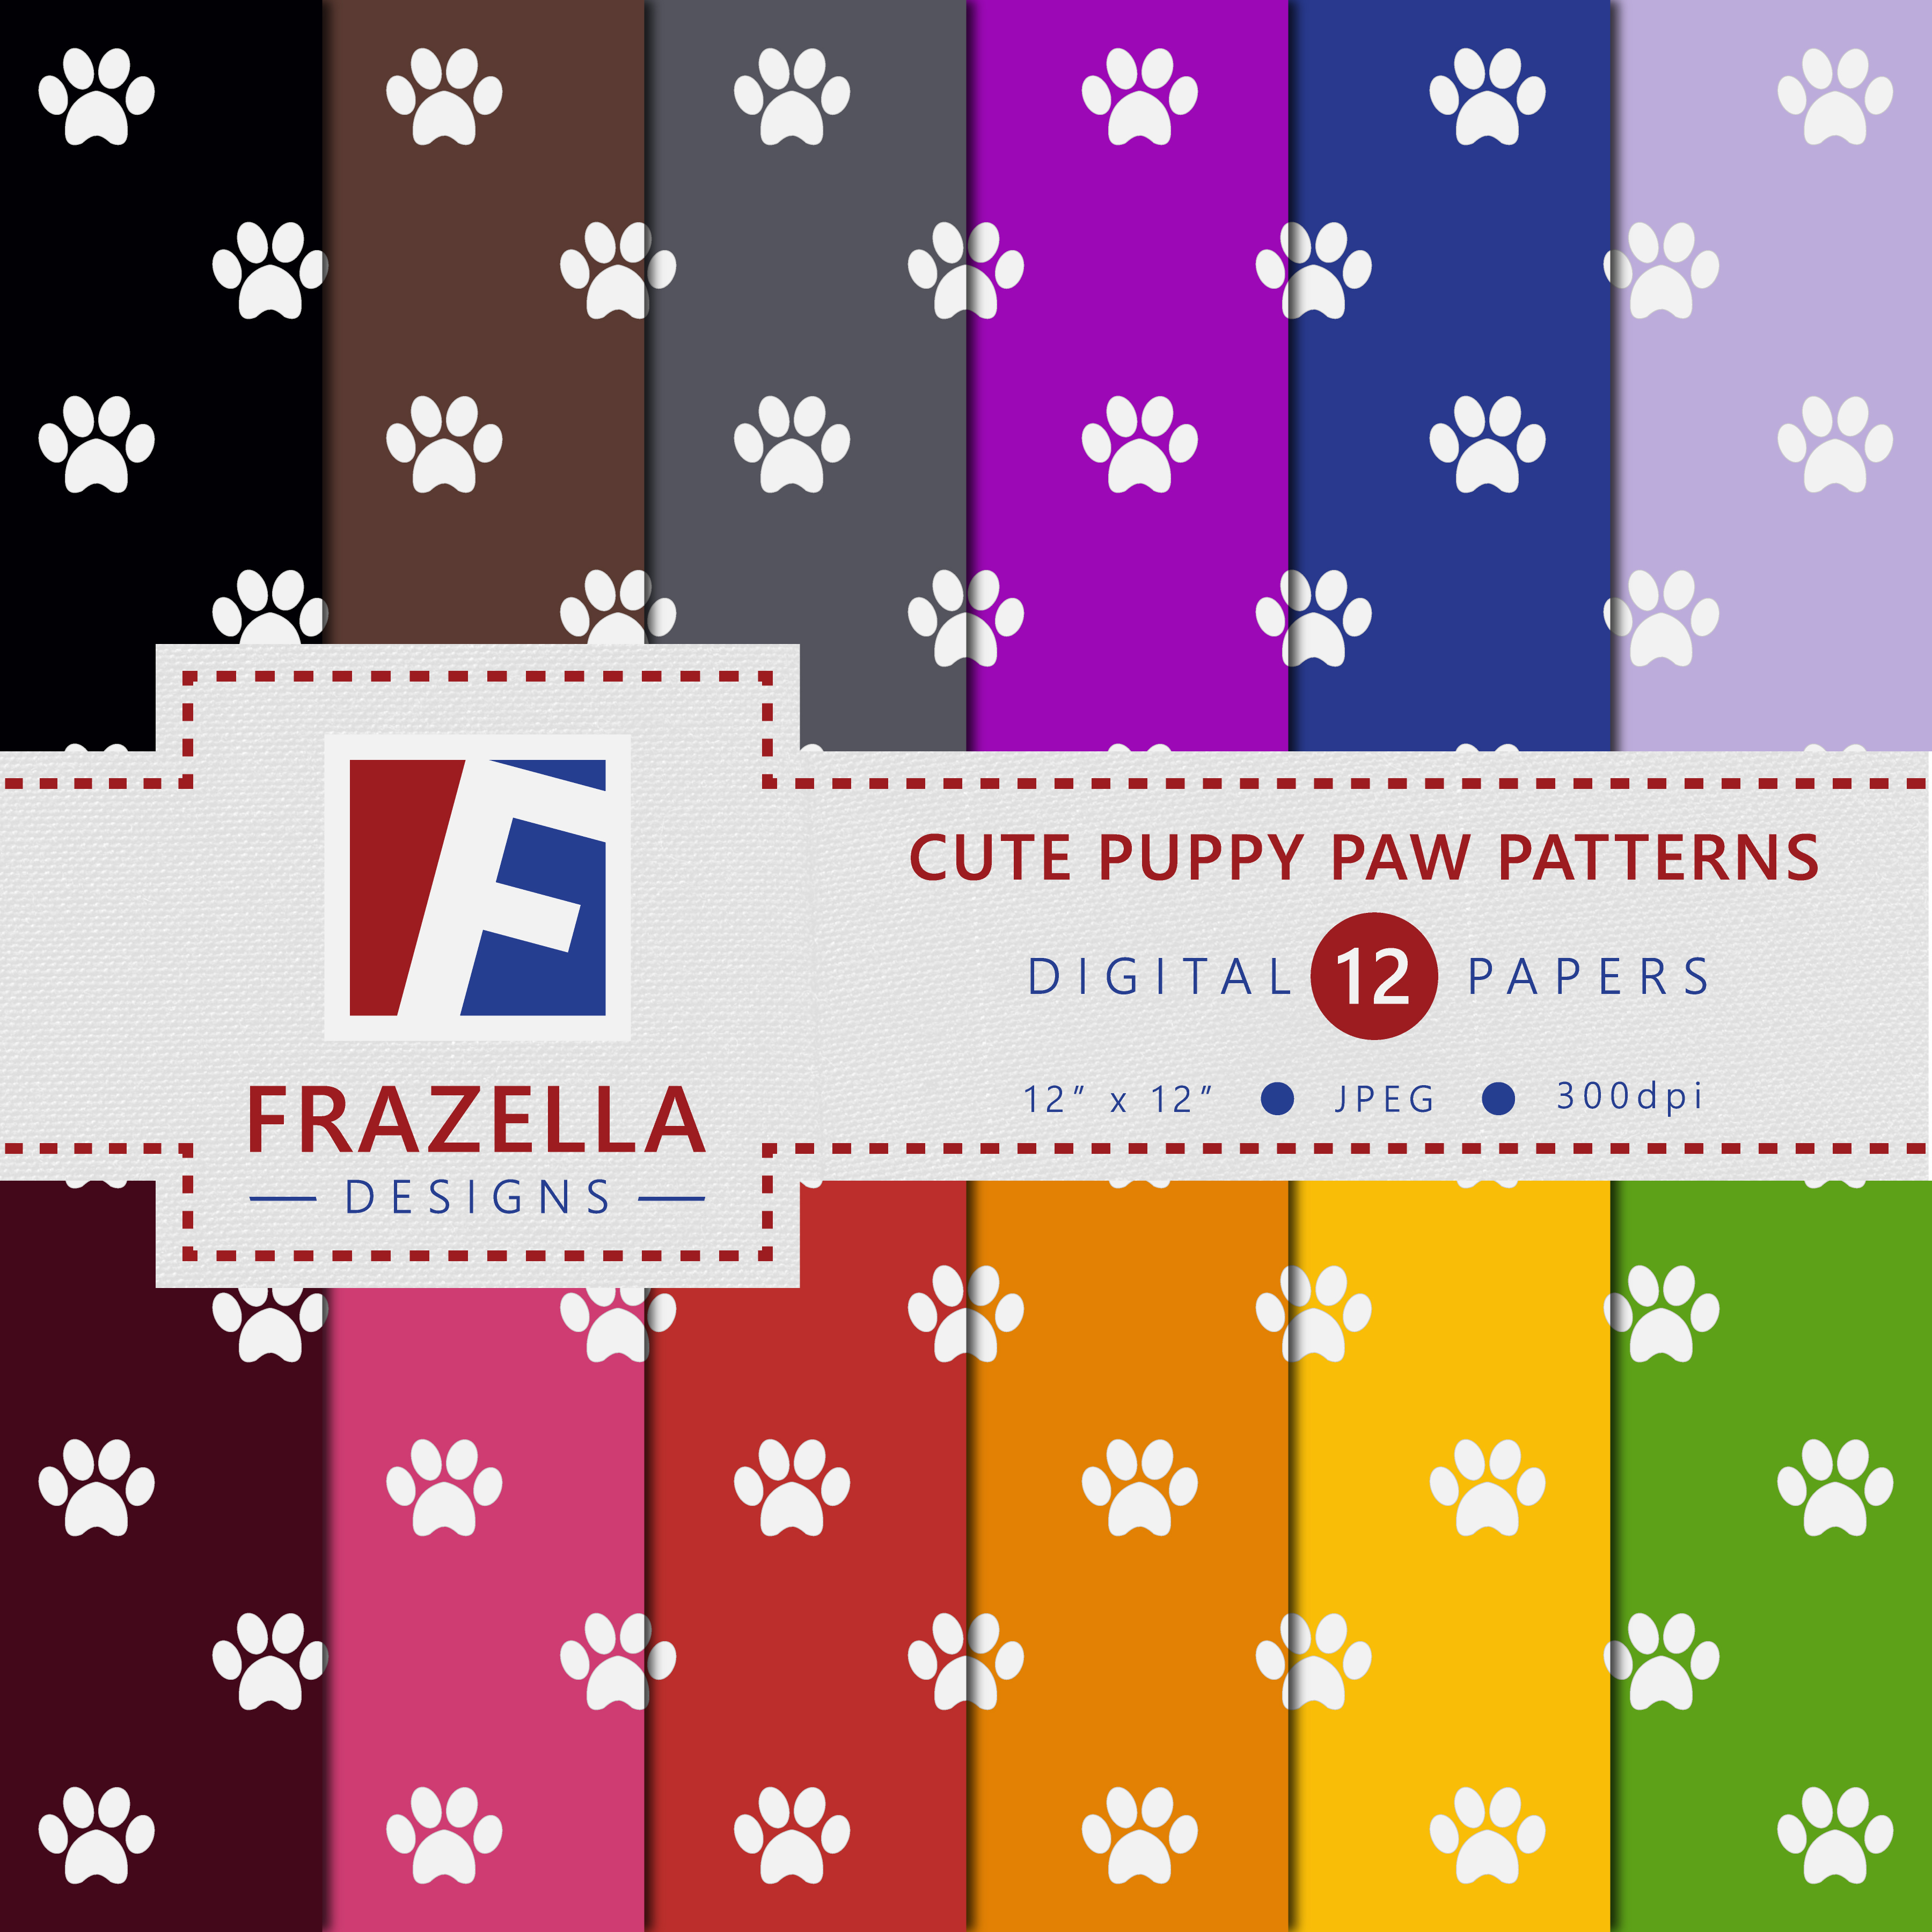 Print on Demand: Cute Puppy Paws Digital Paper Collection Graphic Patterns By Frazella Designs